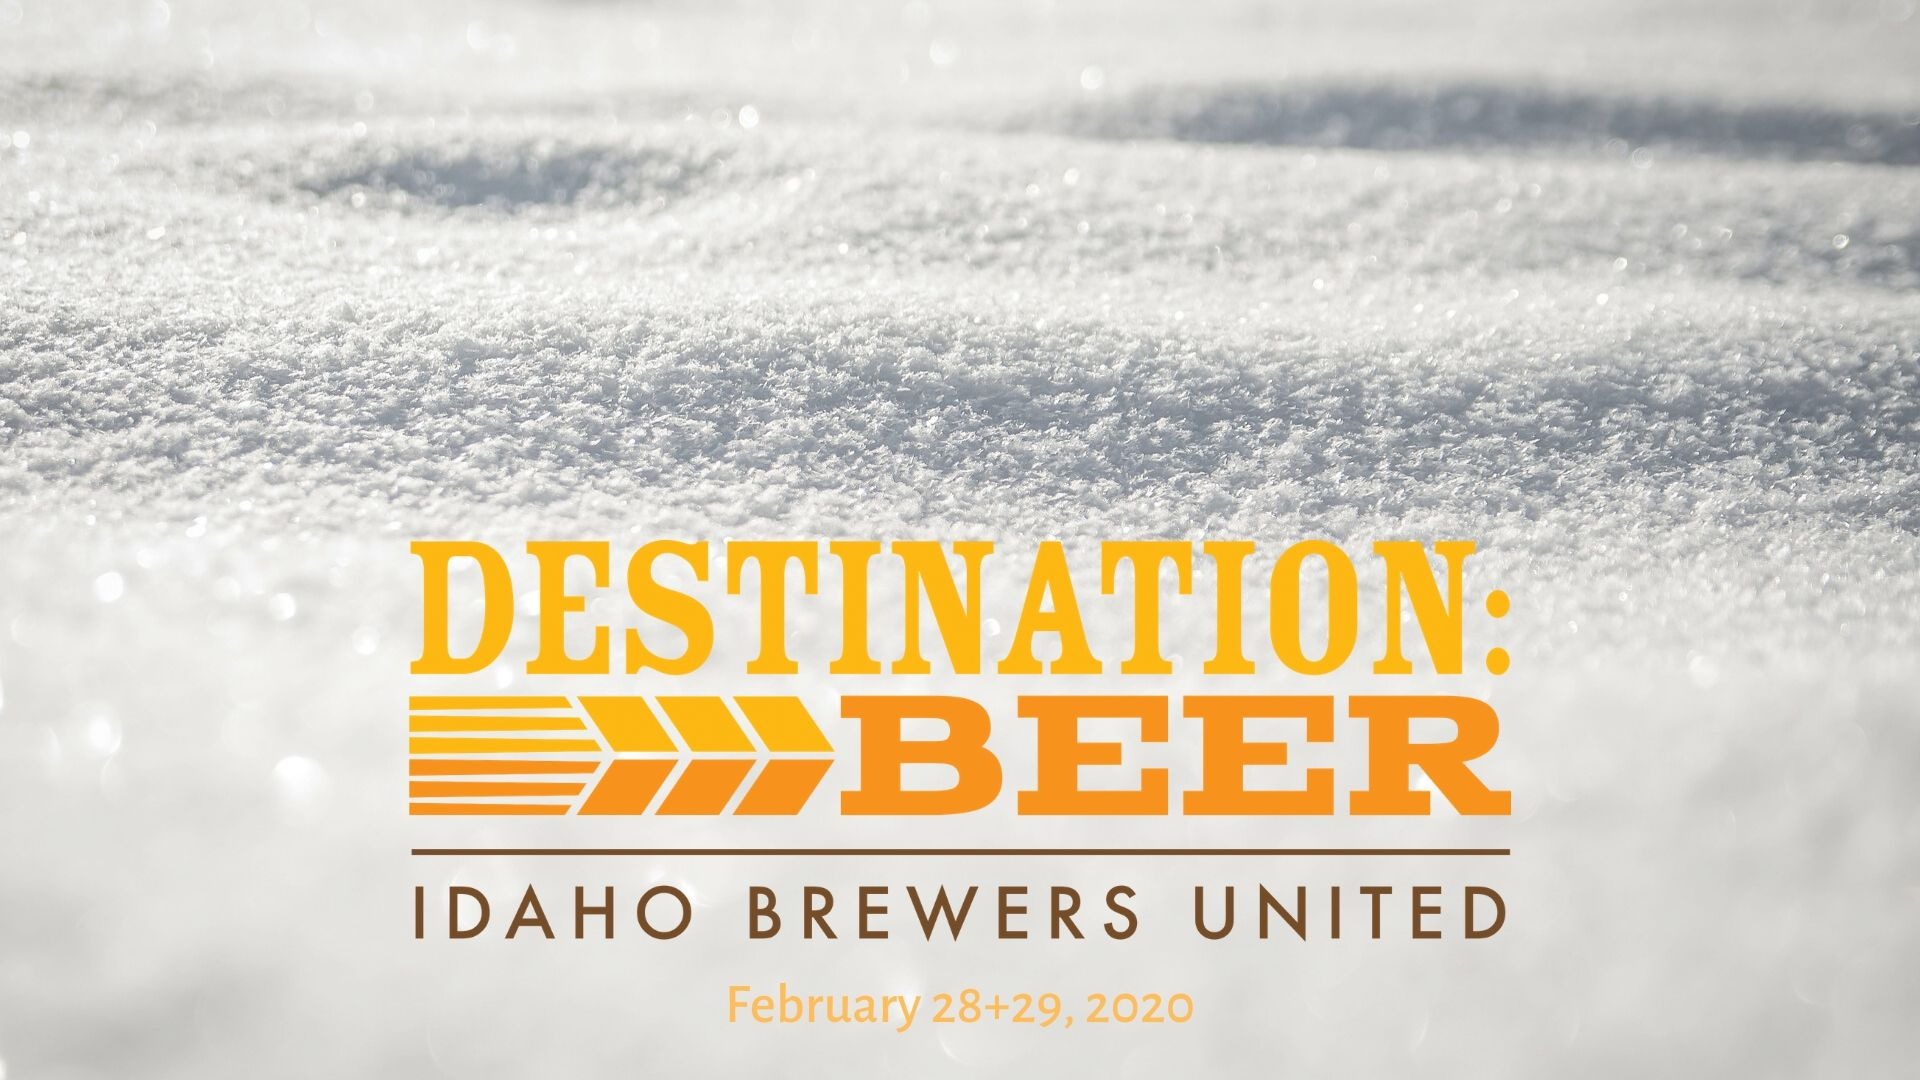 Find tickets from Idaho Brewers United